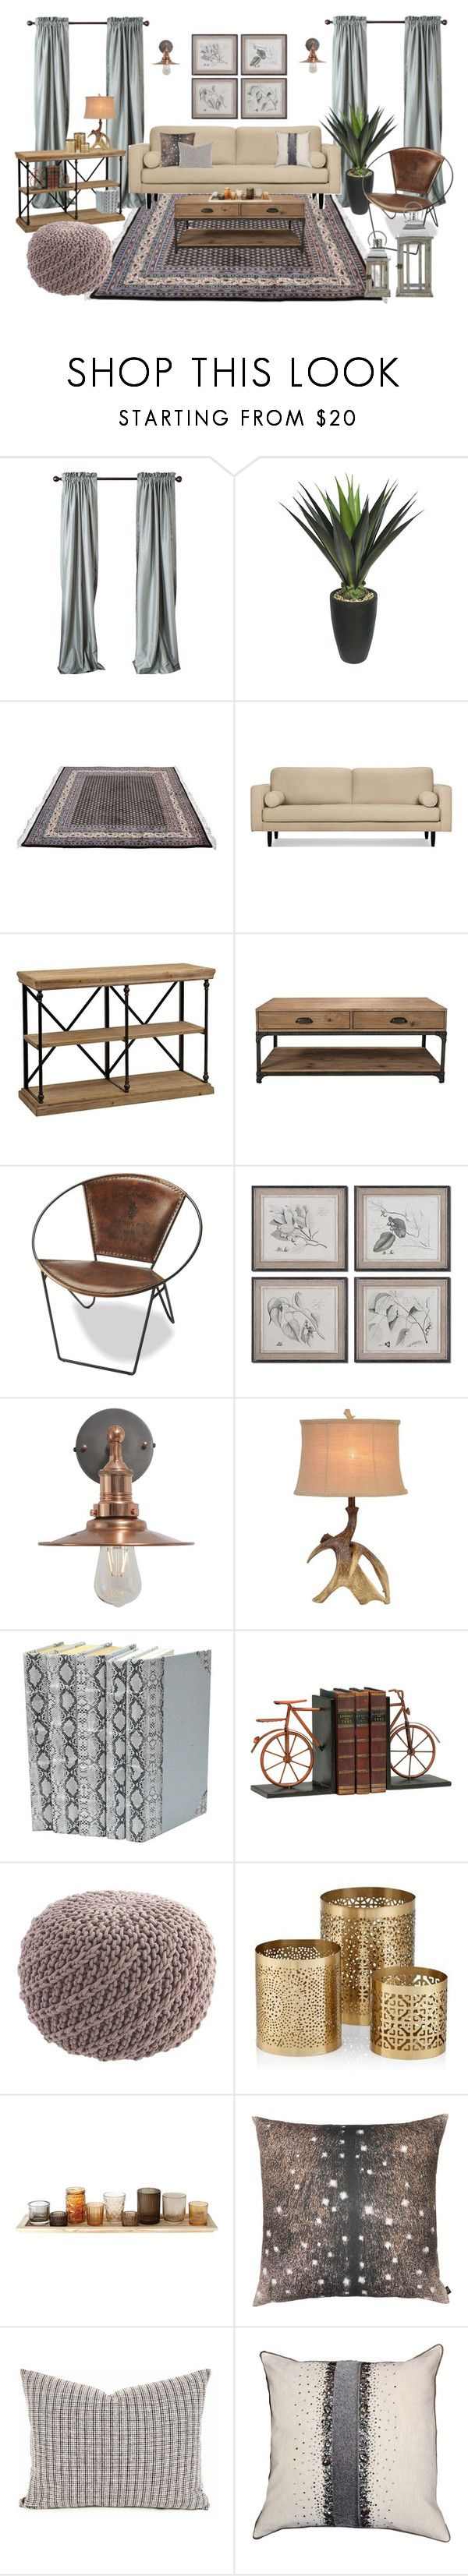 """Country"" by sally-w on Polyvore featuring interior, interiors, interior design, home, home decor, interior decorating, Laura Ashley, Volo Design, Murphy and Thos. Baker"